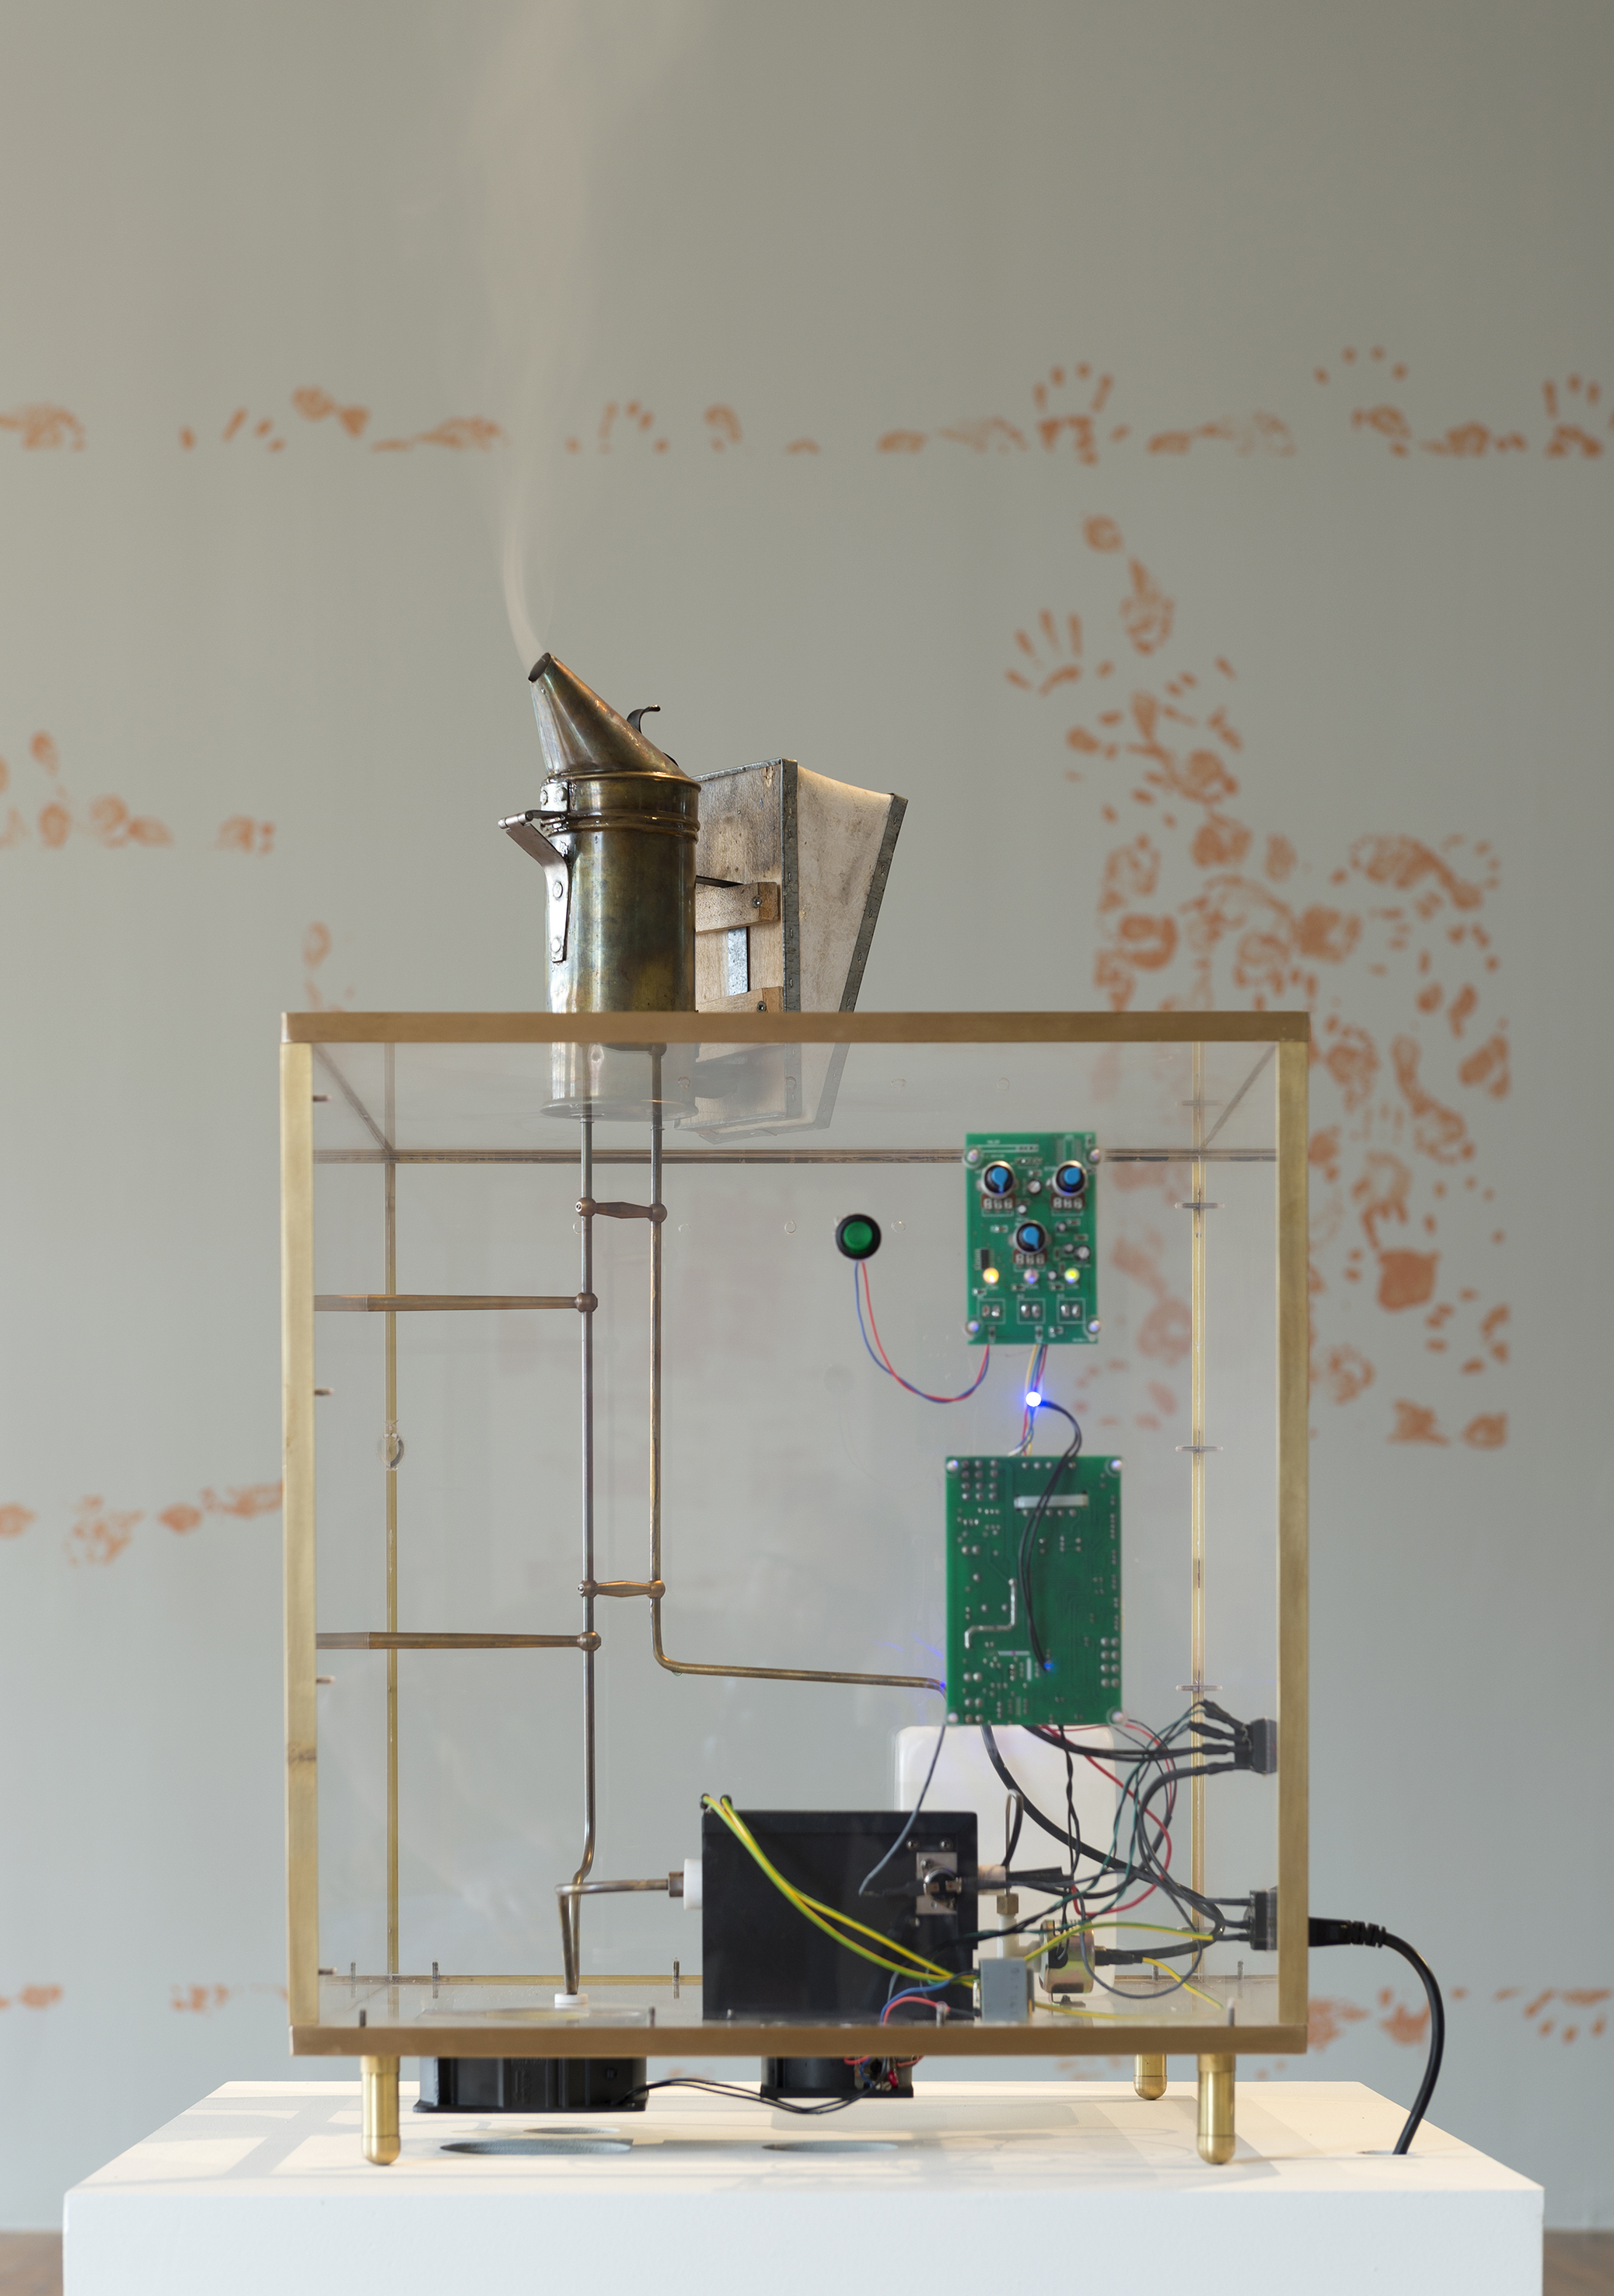 Francisco Tropa,  Fumeux fume, 2018. Eléments en laiton, plexiglas, machine à fumer, enfumoir, 82 x 50 x 50 cm. Production Le Grand Café - centre d'art contemporain, vue de l'exposition Le Grand Café, la Moustache cachée dans la barbe, 2018. Courtesy Galerie Jocelyn Wolff, Paris. Photographie Marc Domage.